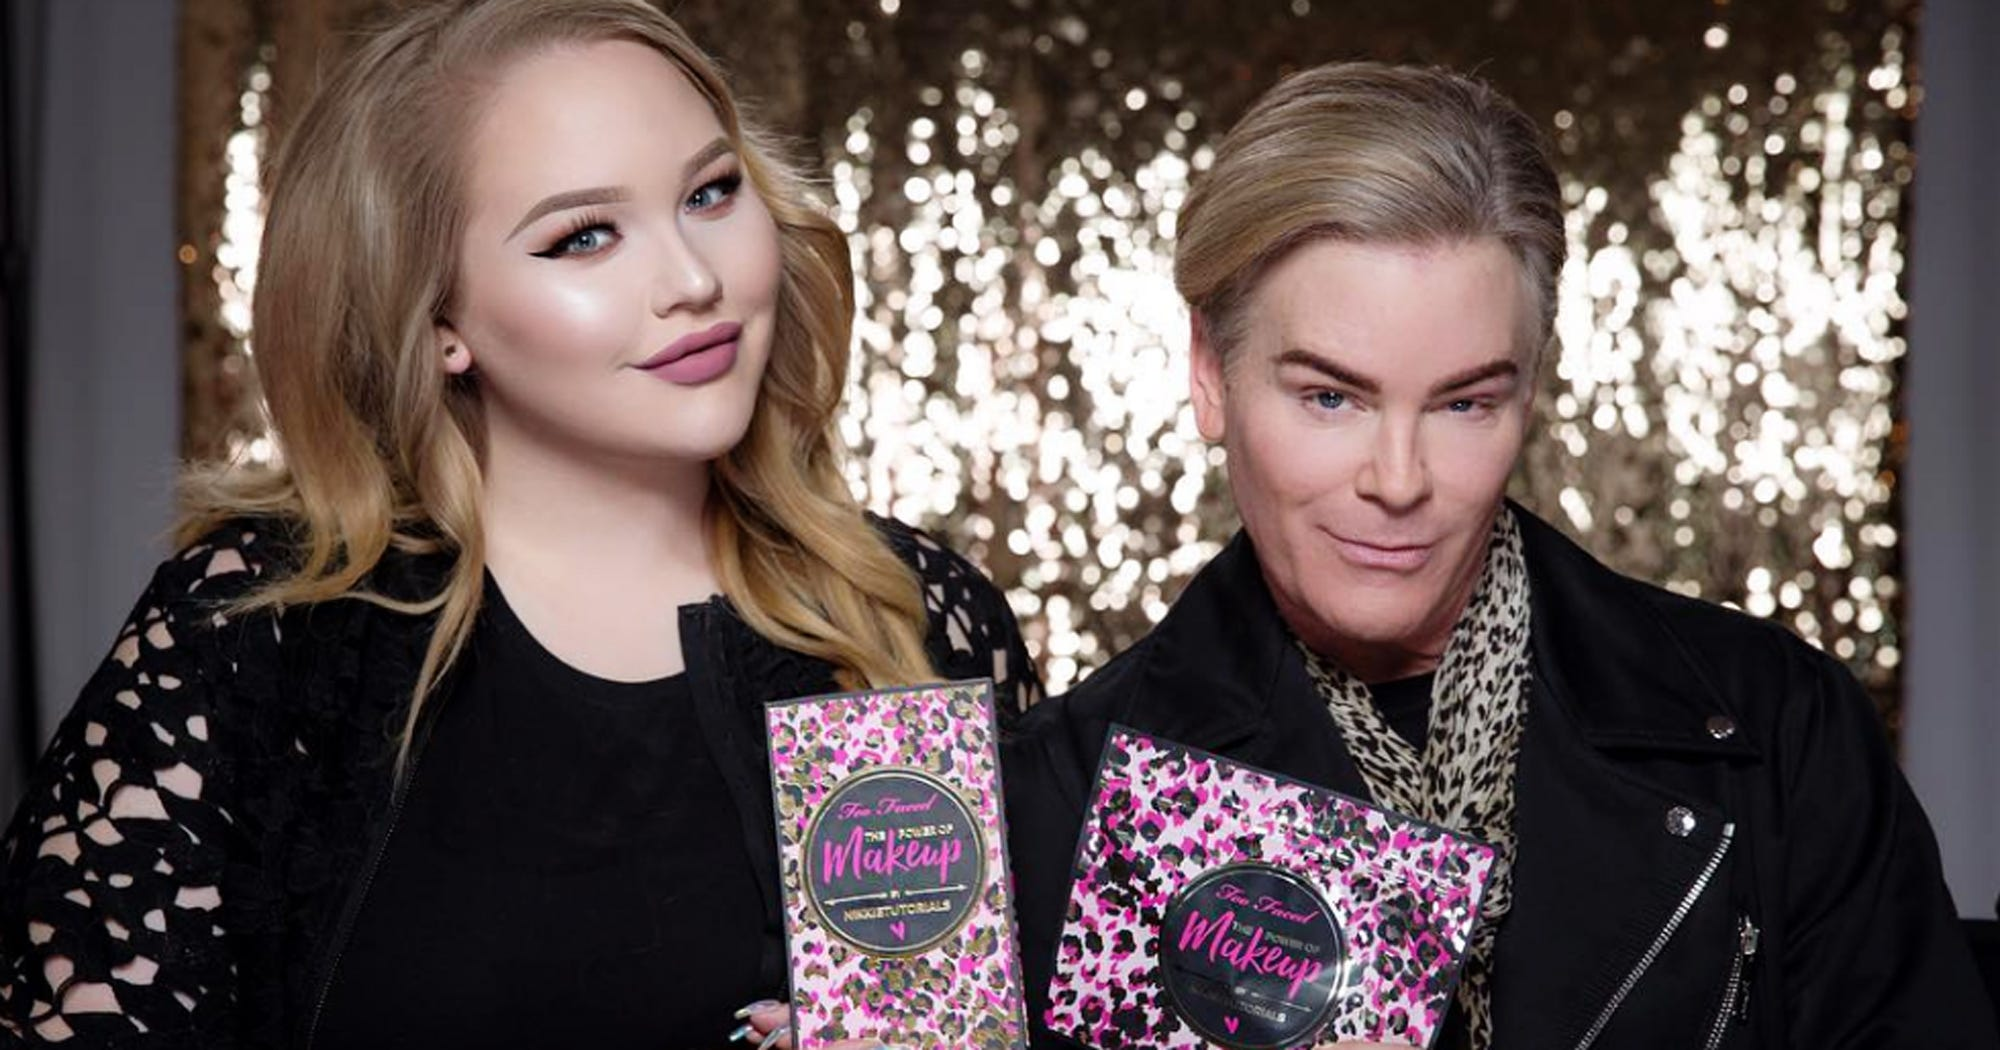 Too Faced Founder Jerrod Blandino Fires His Sister Over Transphobic NikkieTutorials Comments